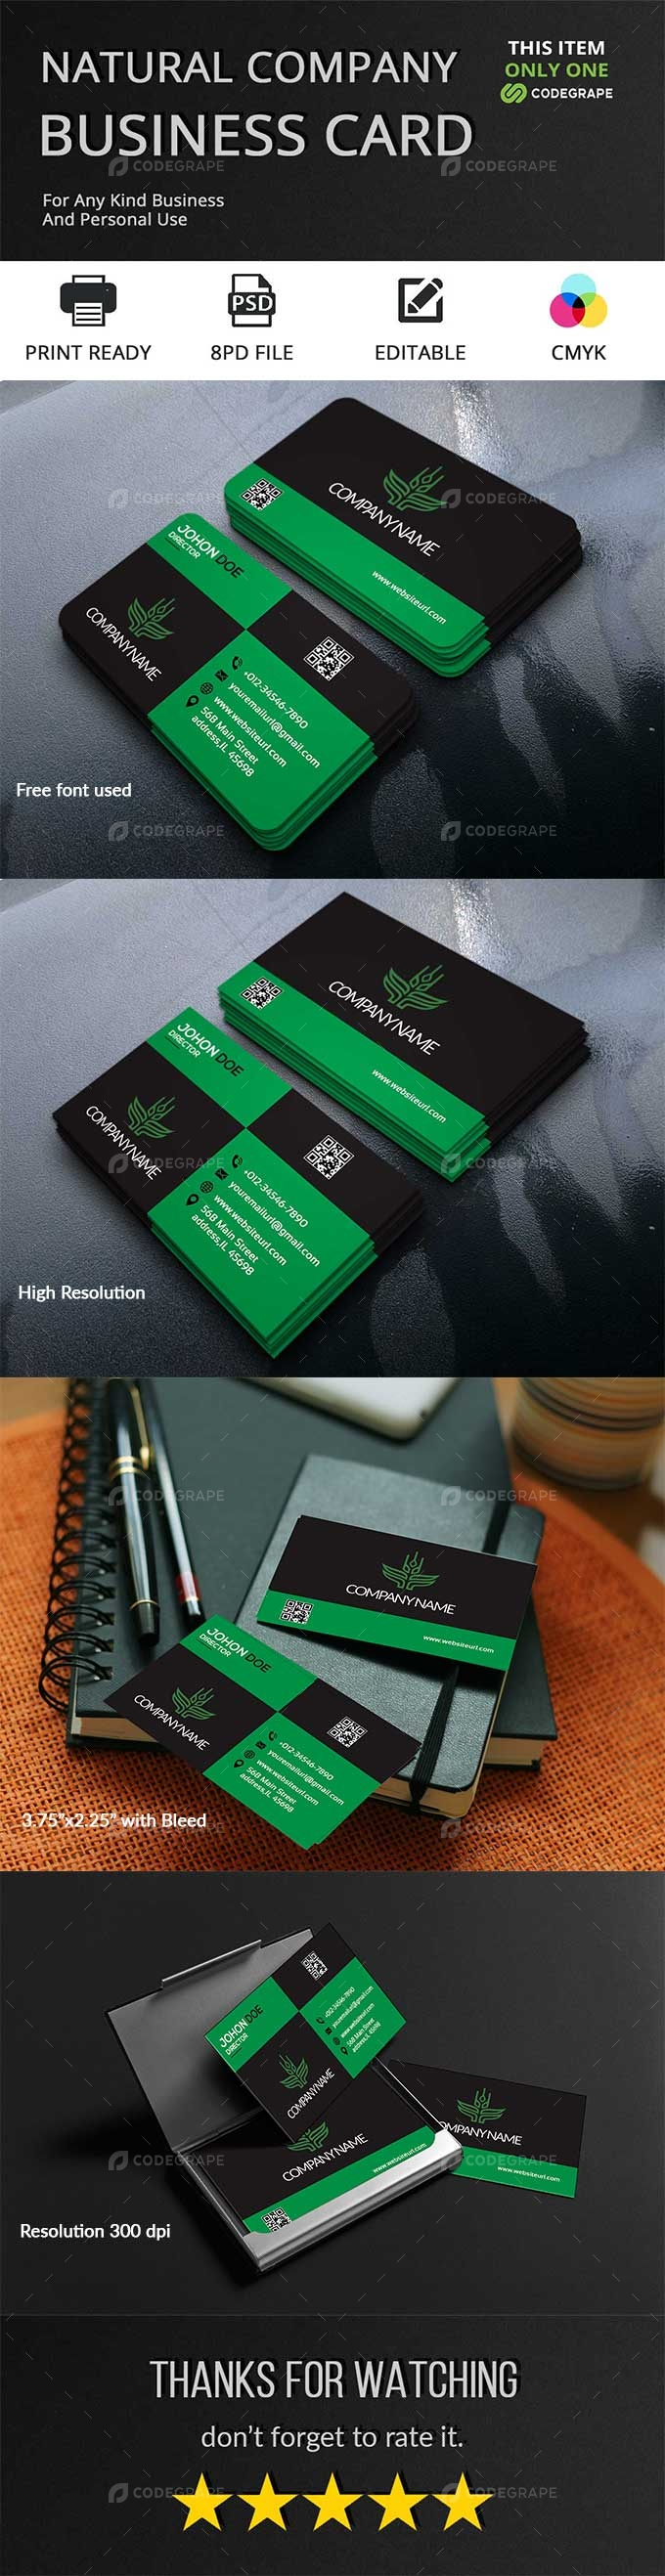 Natural Company Business Card